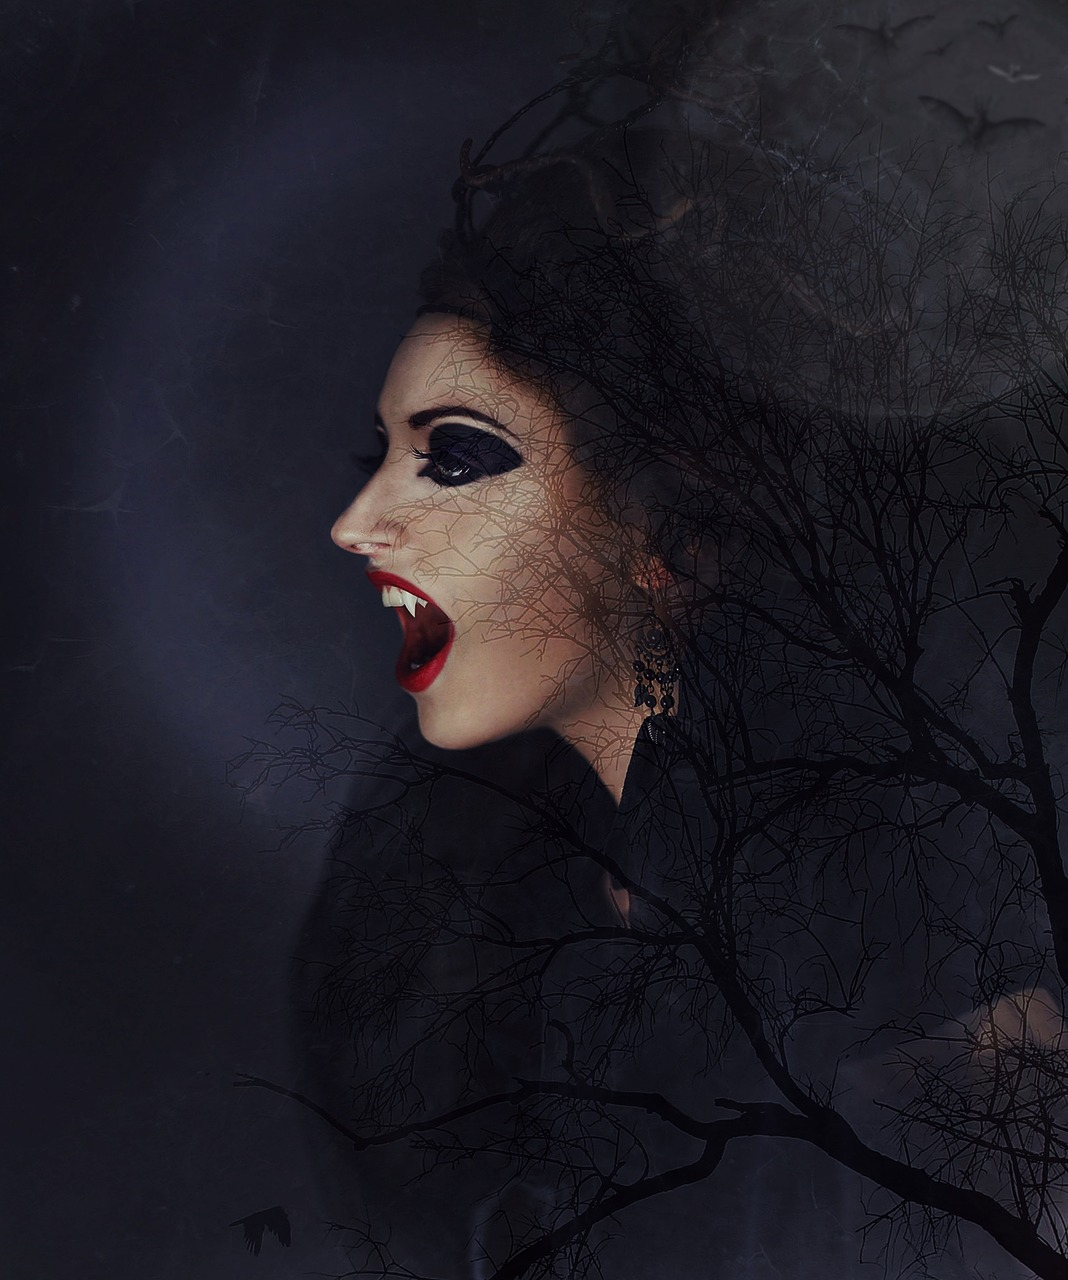 vampire vampire woman vampire lady free photo